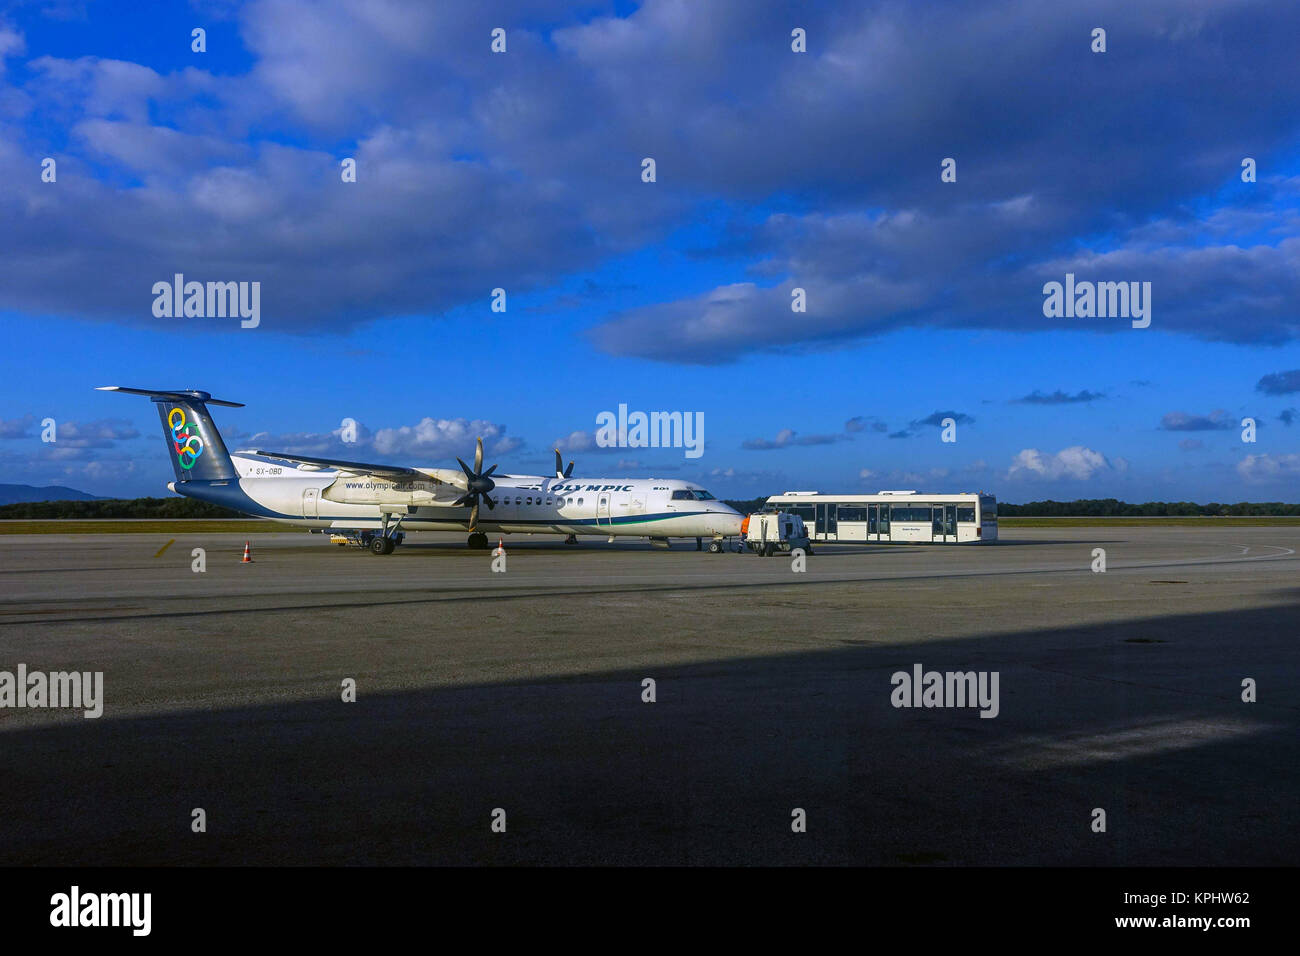 Bombardier Dash aircraft on tarmac at Kos Island airport - Stock Image